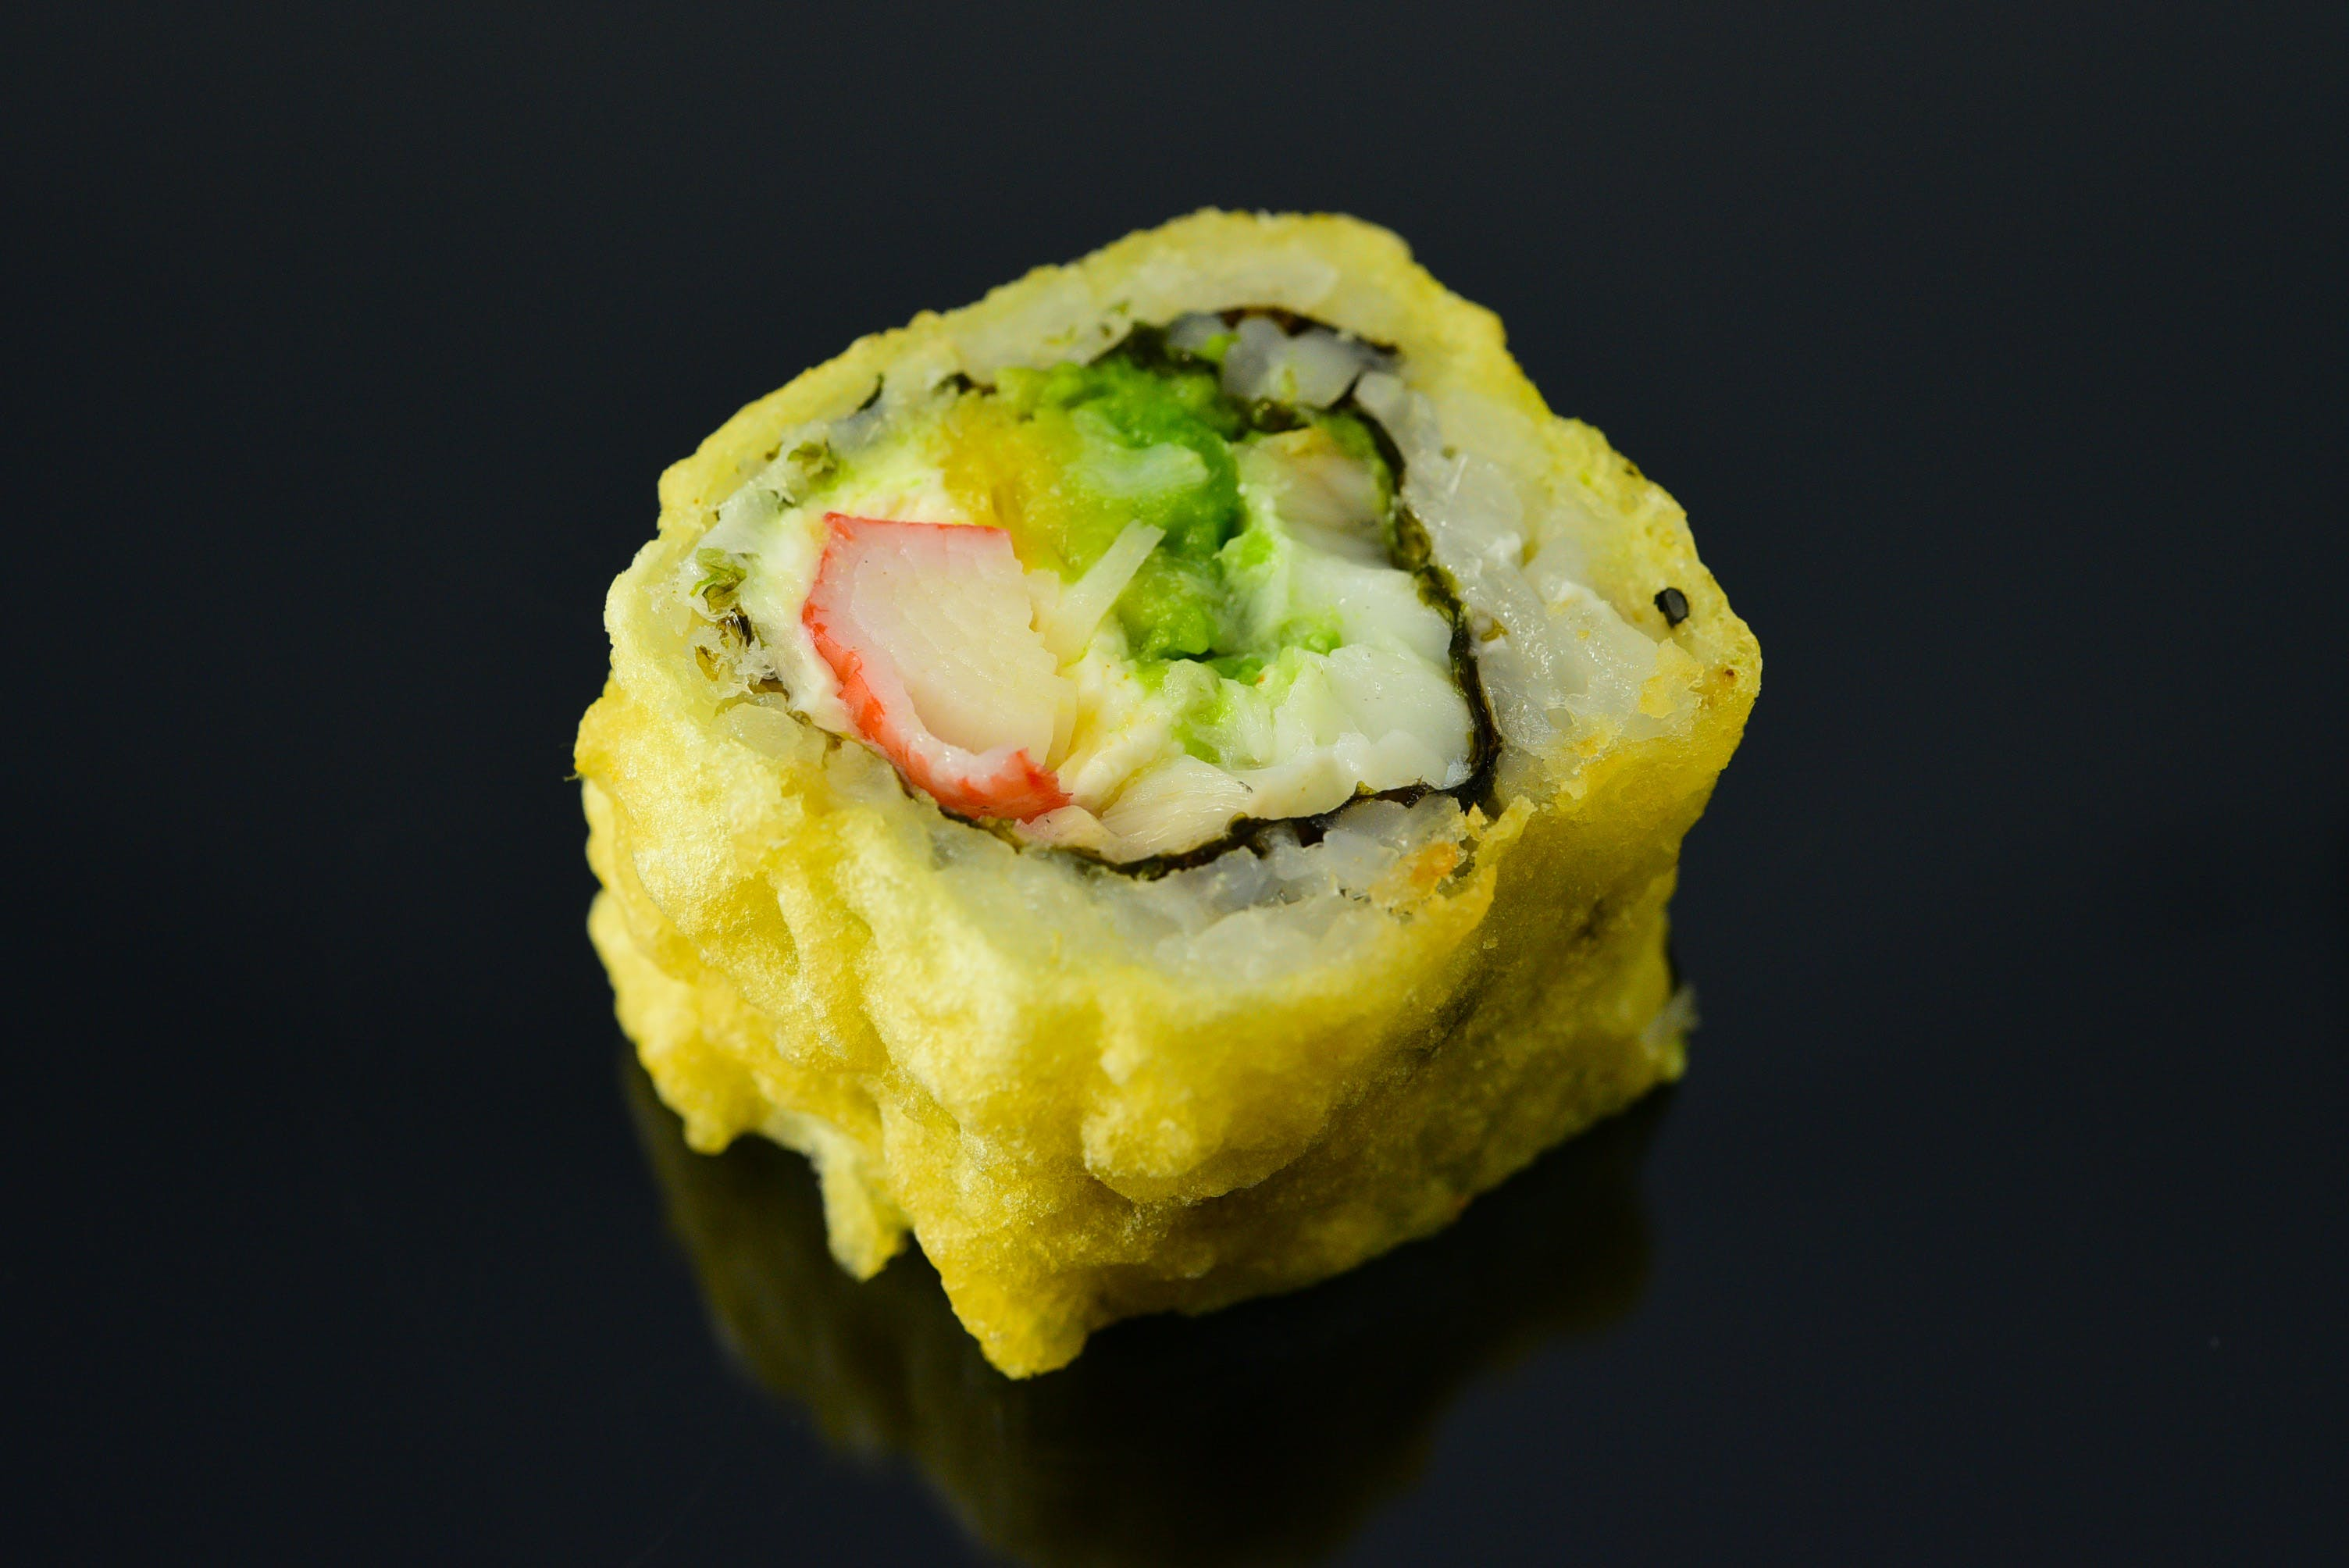 Dynamite Roll from Fin Sushi in Madison, WI